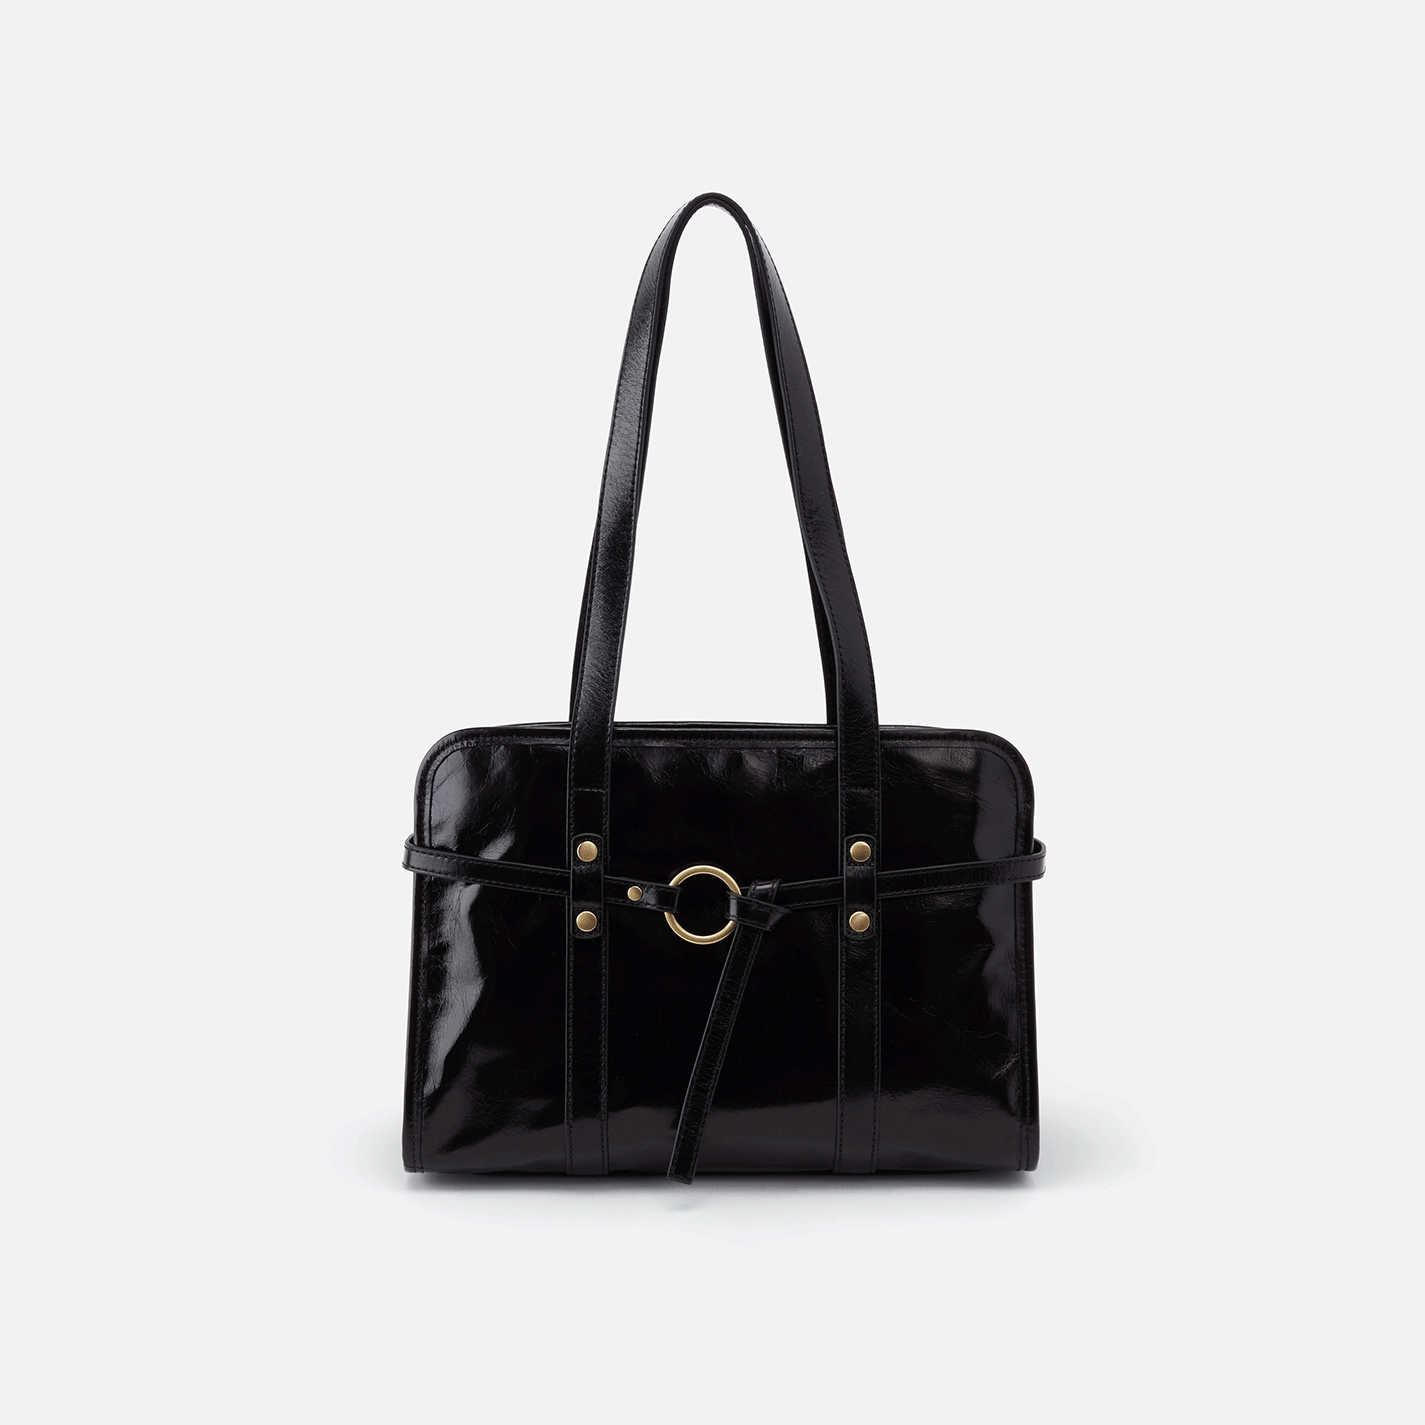 Hobo - Avon Satchel